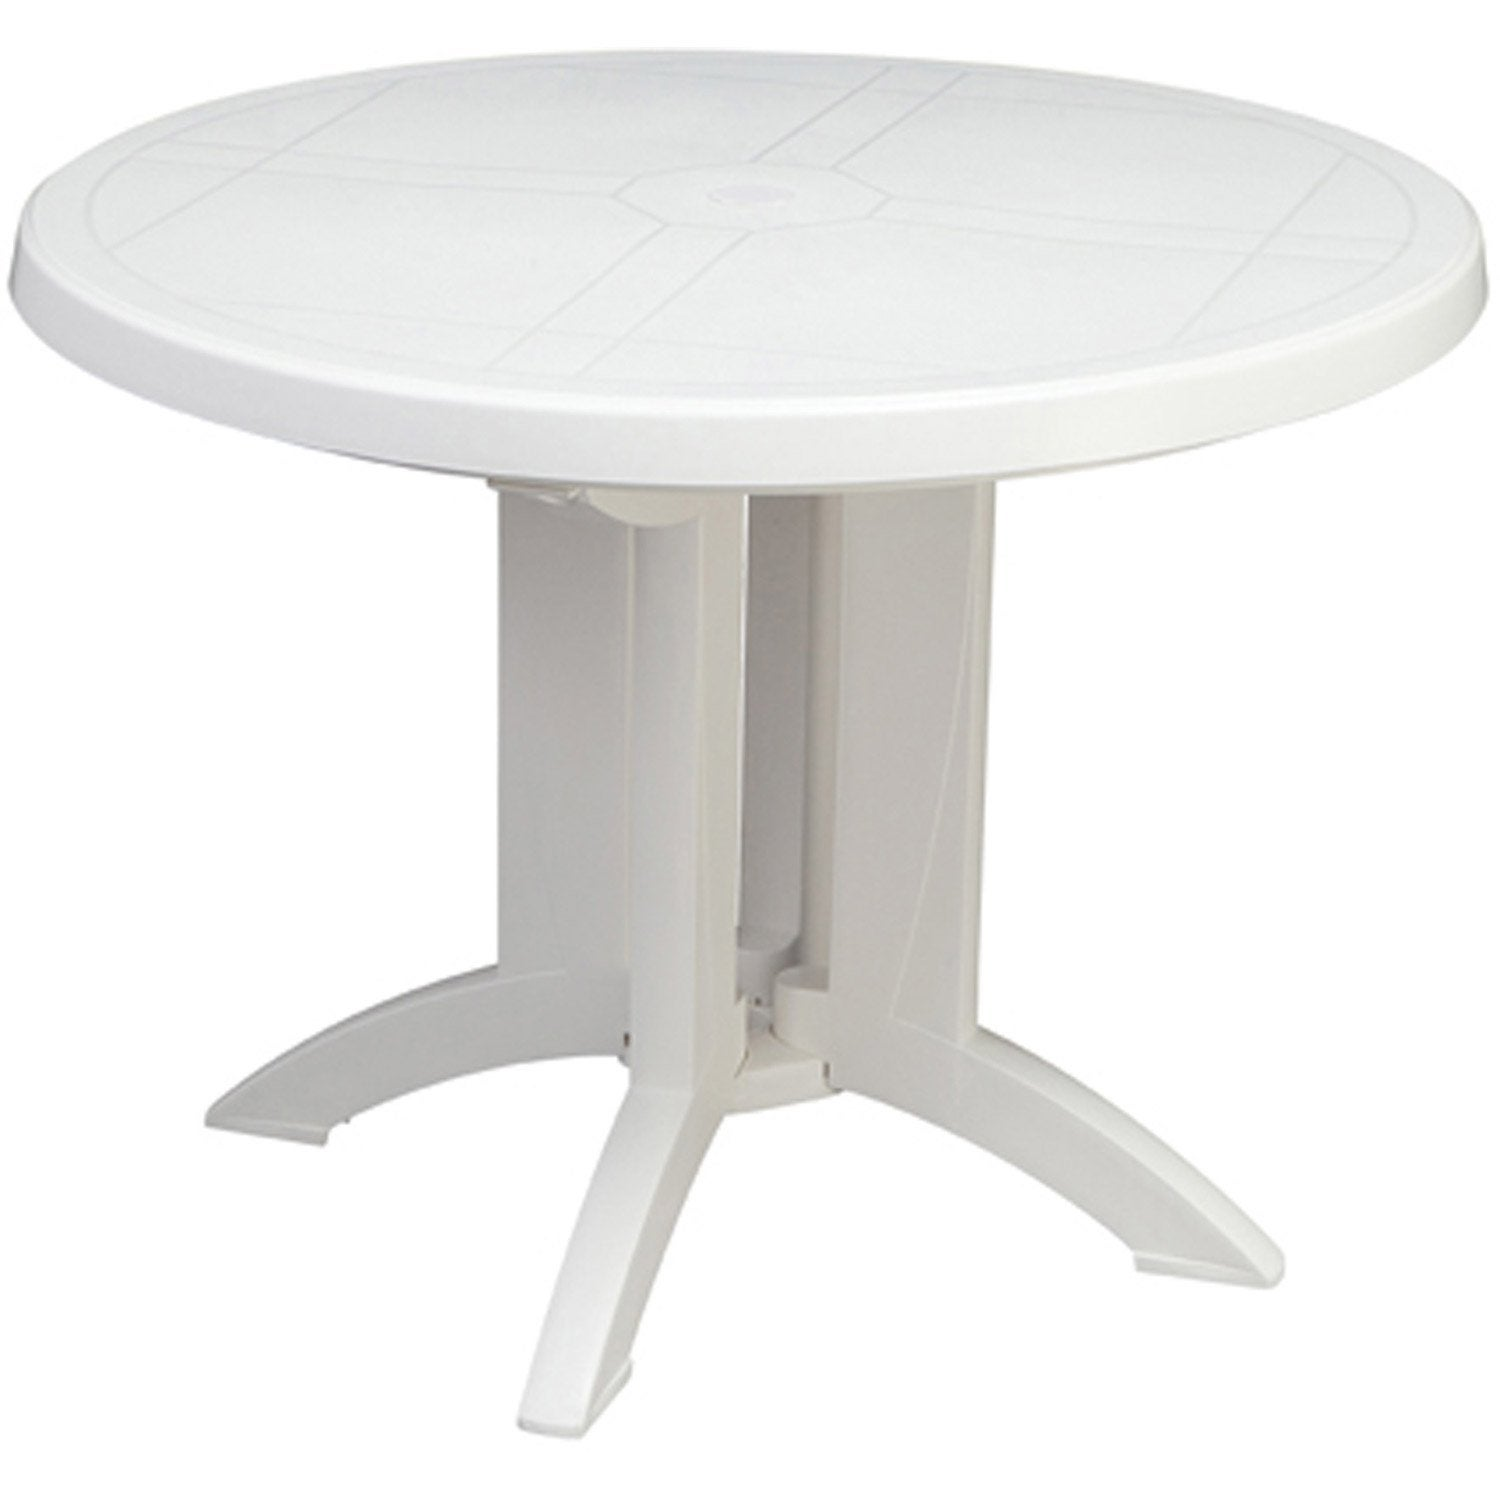 D coration table jardin vega paris 2832 paris table - Piscine grissan ...